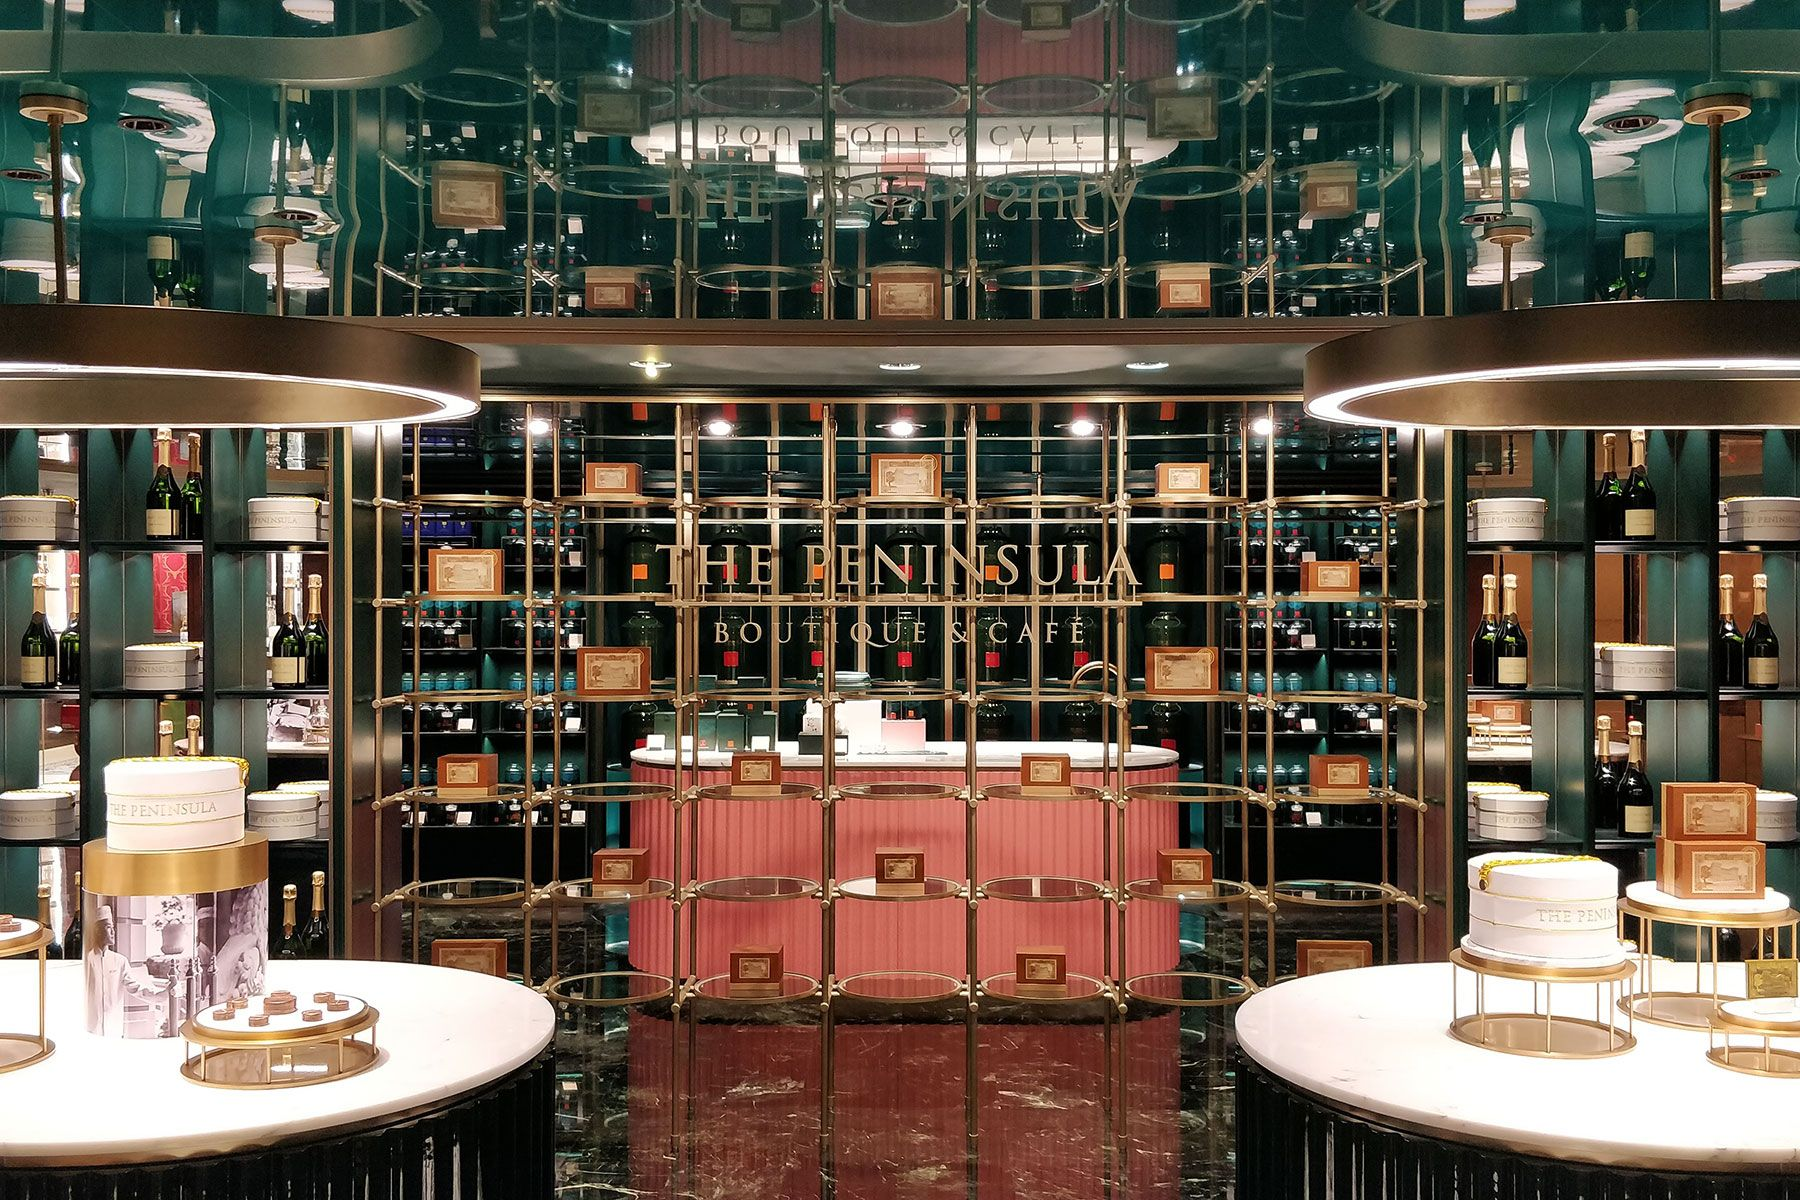 The Peninsula Boutique & Cafe Opens, Offering A Contemporary Alternative To The Historic Afternoon Tea